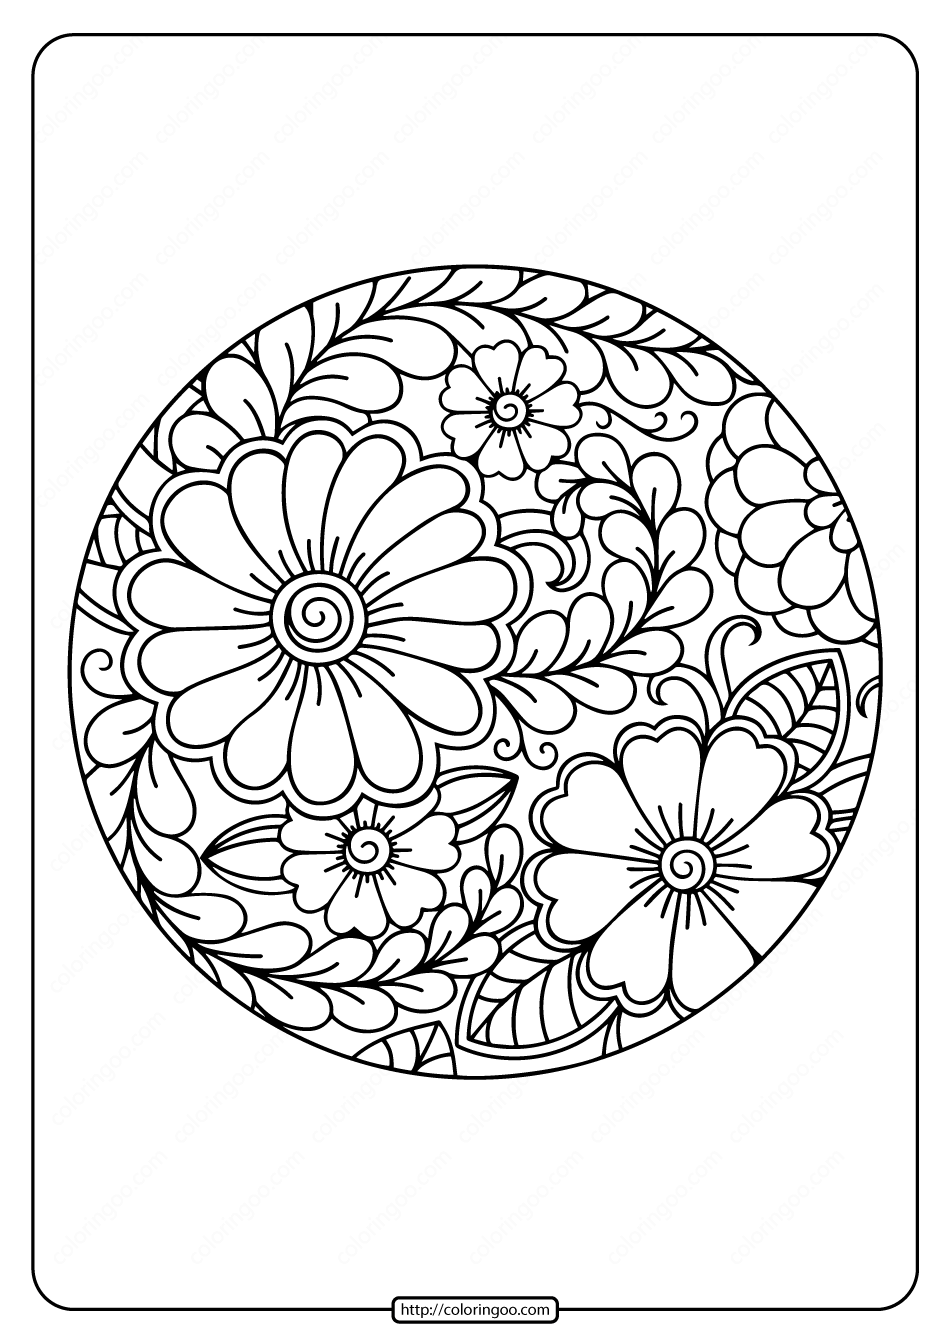 Printable Circle Border Flower Coloring Page